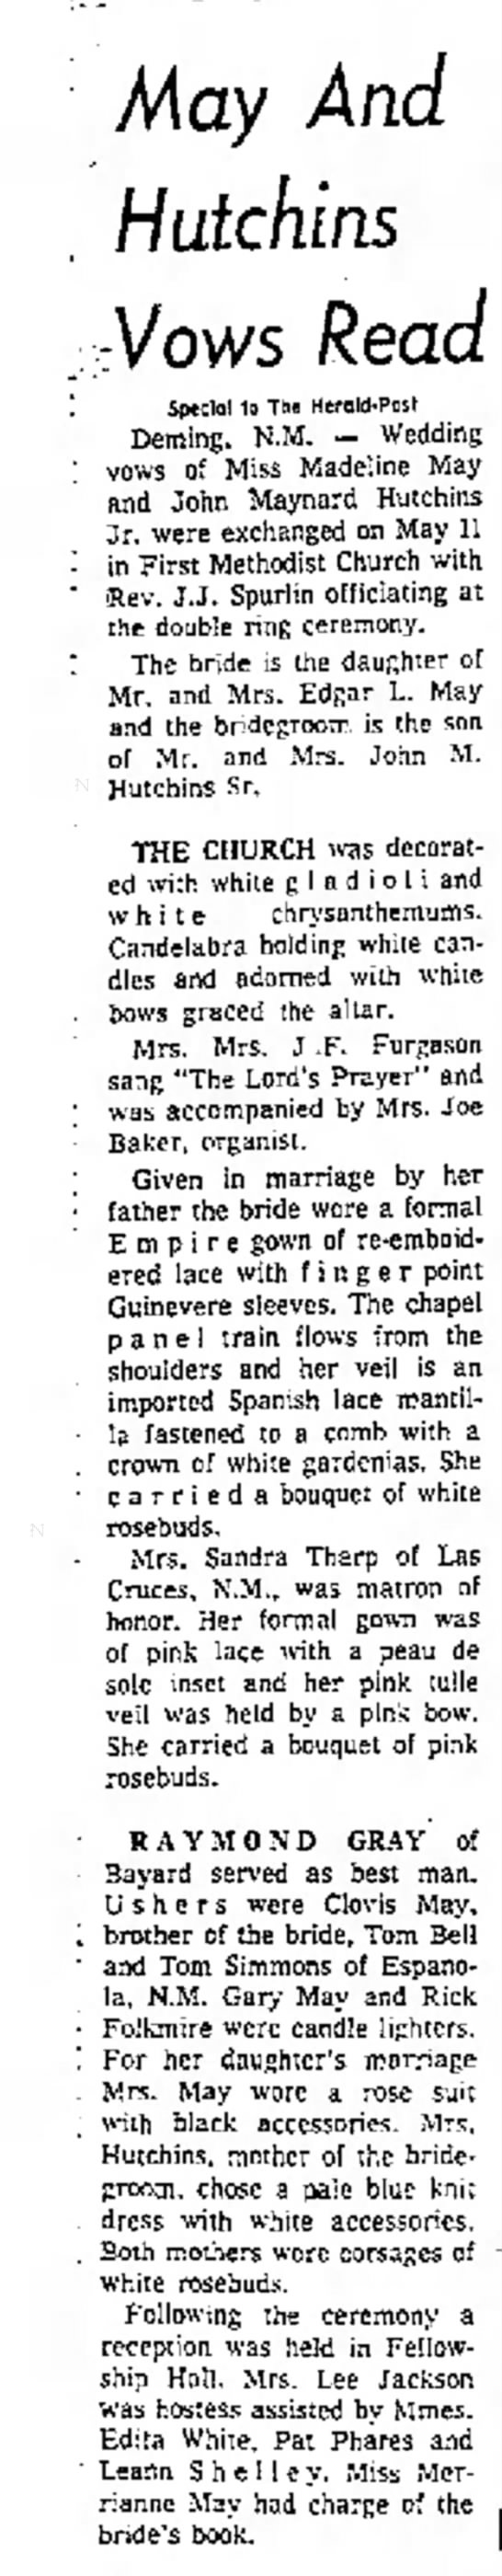 May-Hutchins marriage, May 1968, in Deming, NM, reported in Wl Paso Herald-Post, May 1968 -